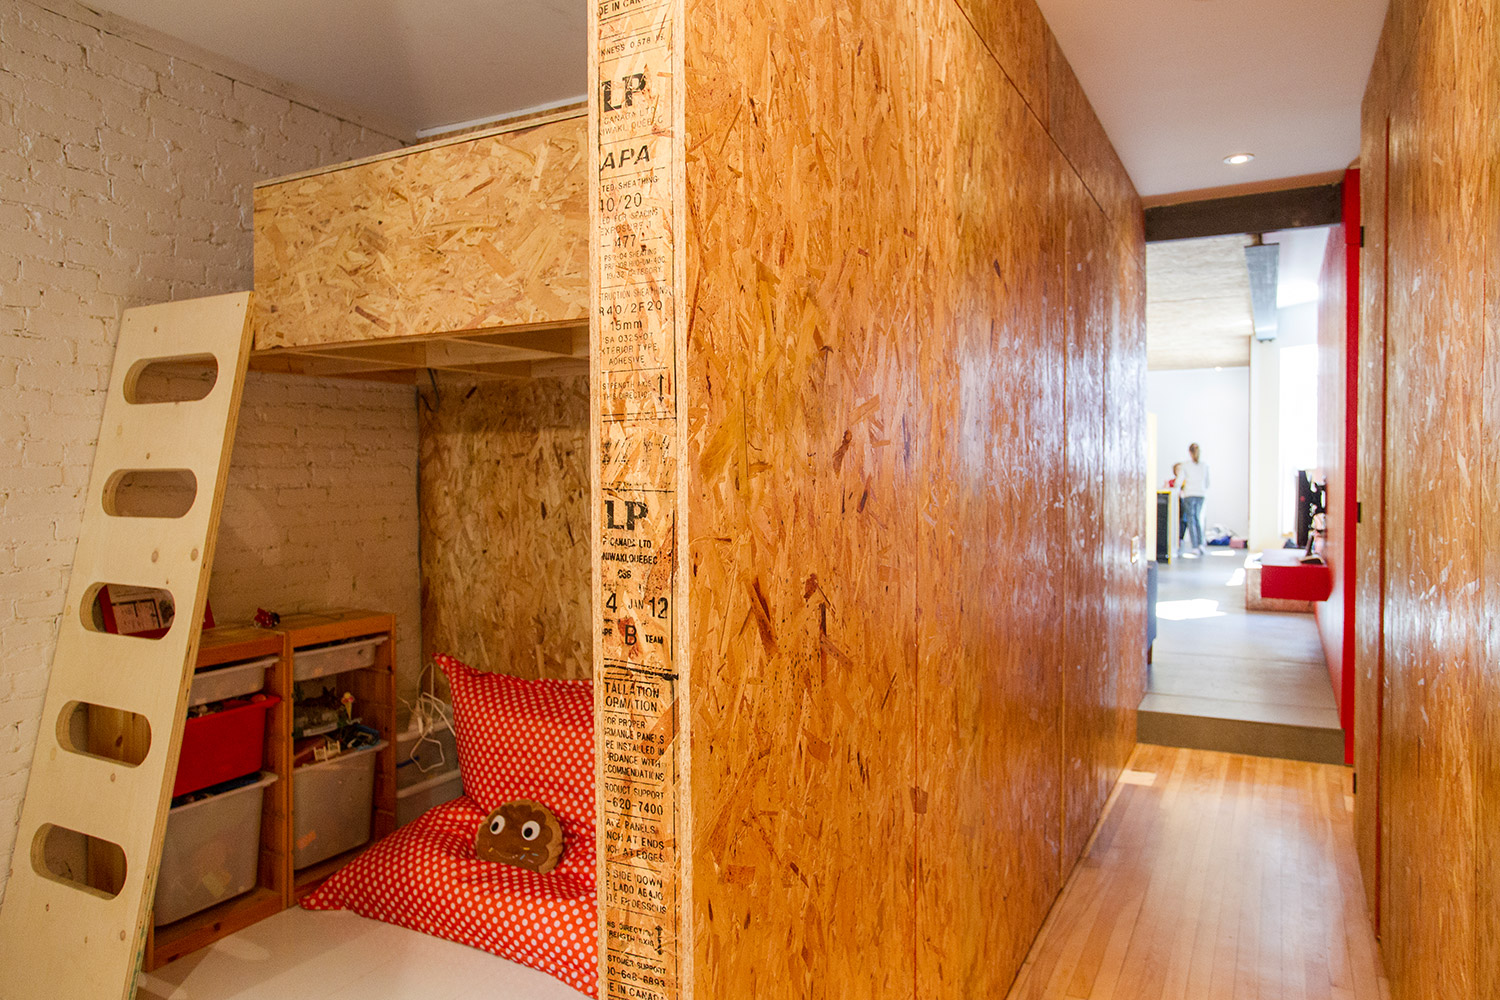 Renovation of an apartment on the plateau. Children's room with loft bed. Partitions and division made of chipboard (OSB). White painted brick wall